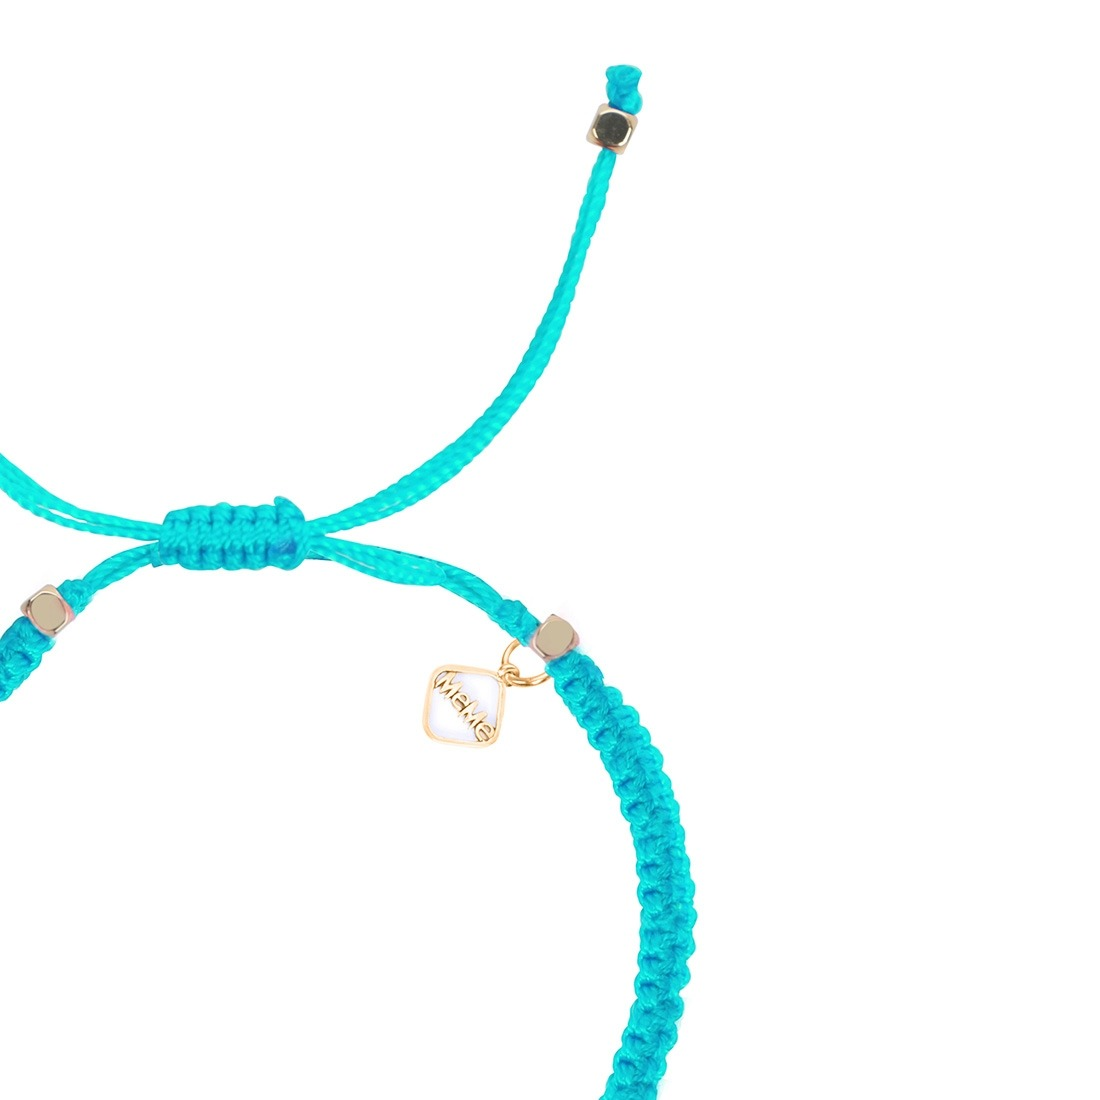 ST. TROPEZ - TURQUOISE WITH GOLD